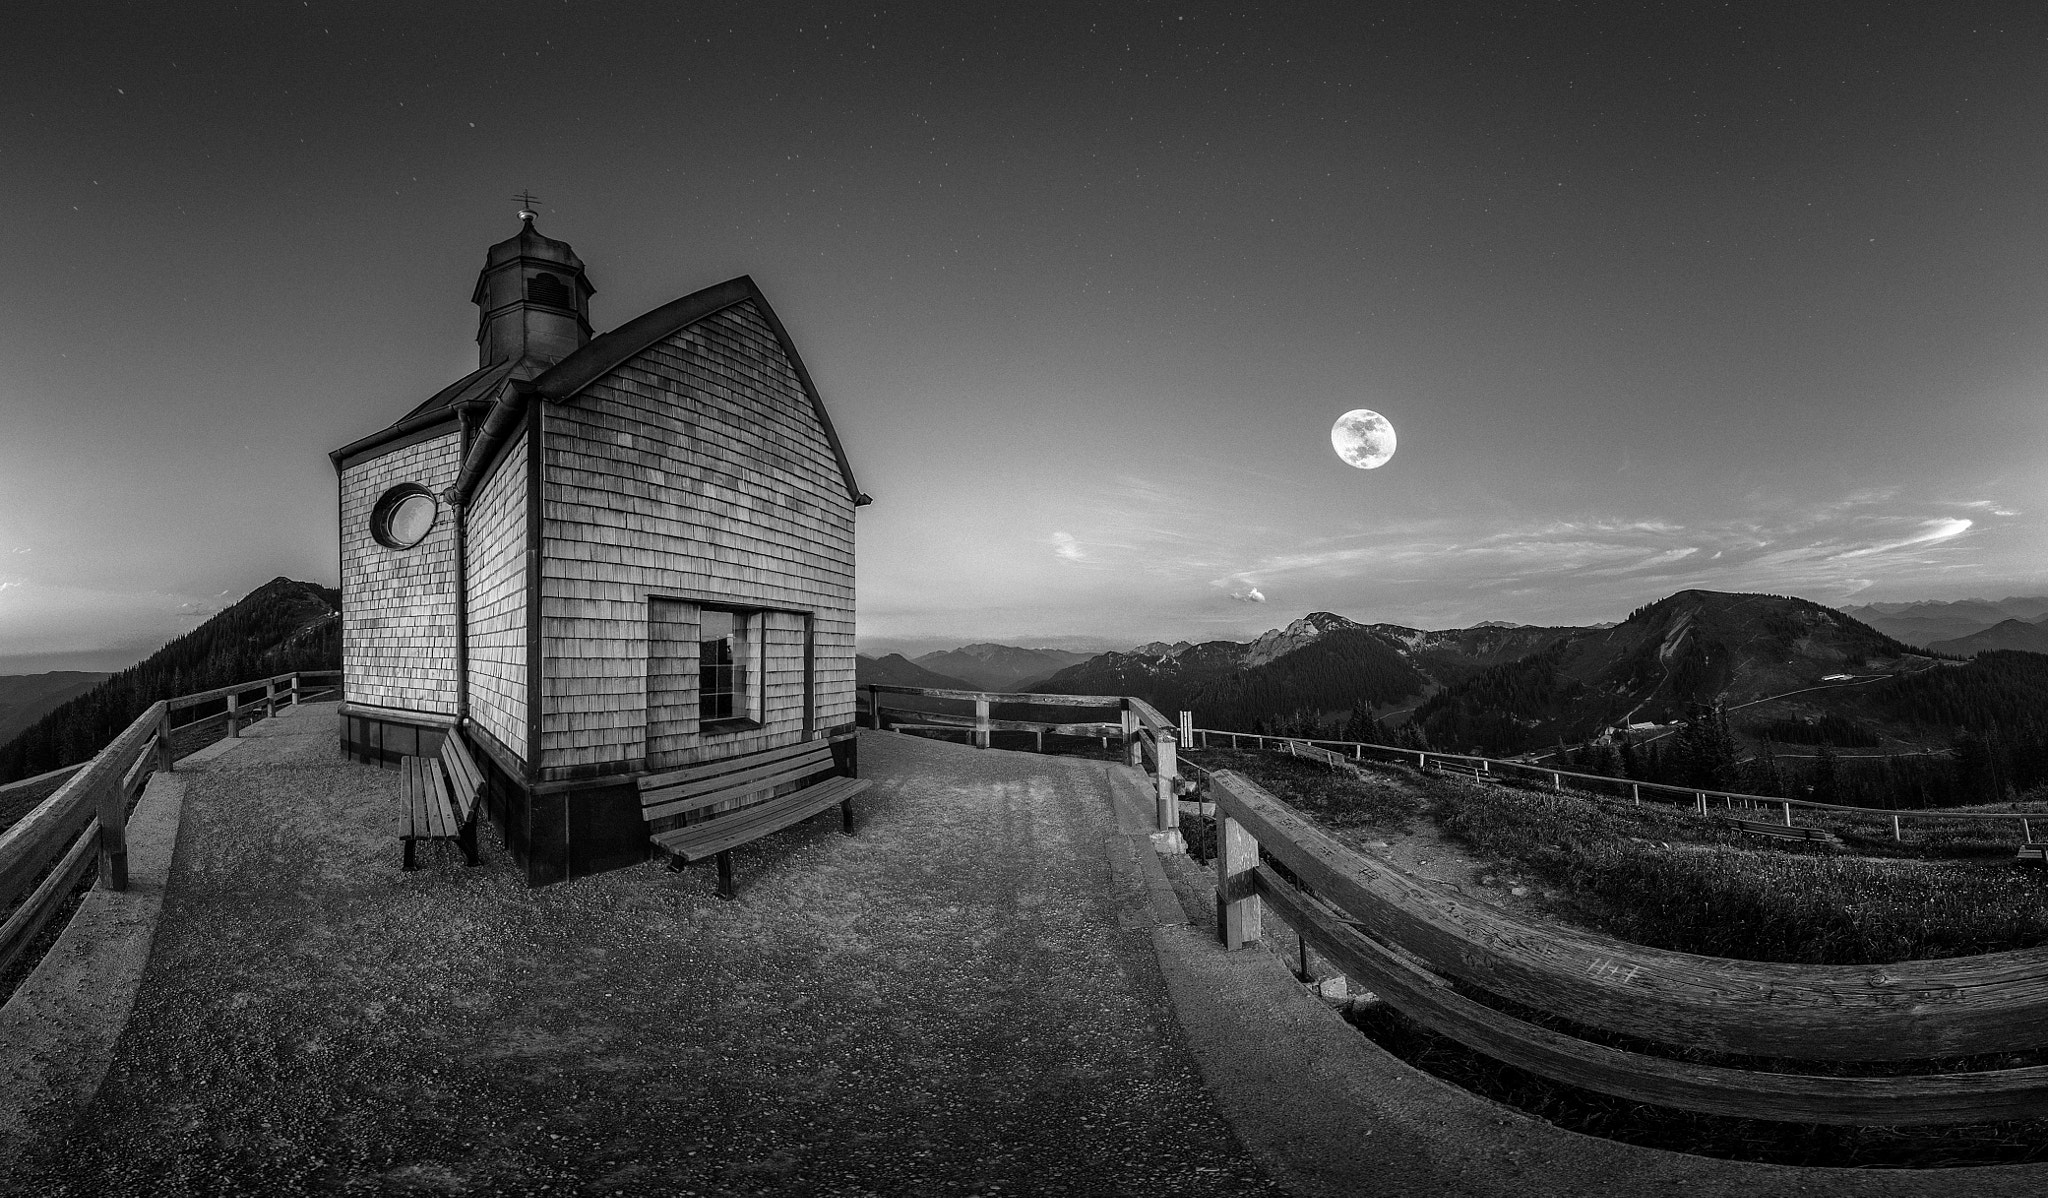 Photograph Bergnacht SW by Stefan Thaler on 500px